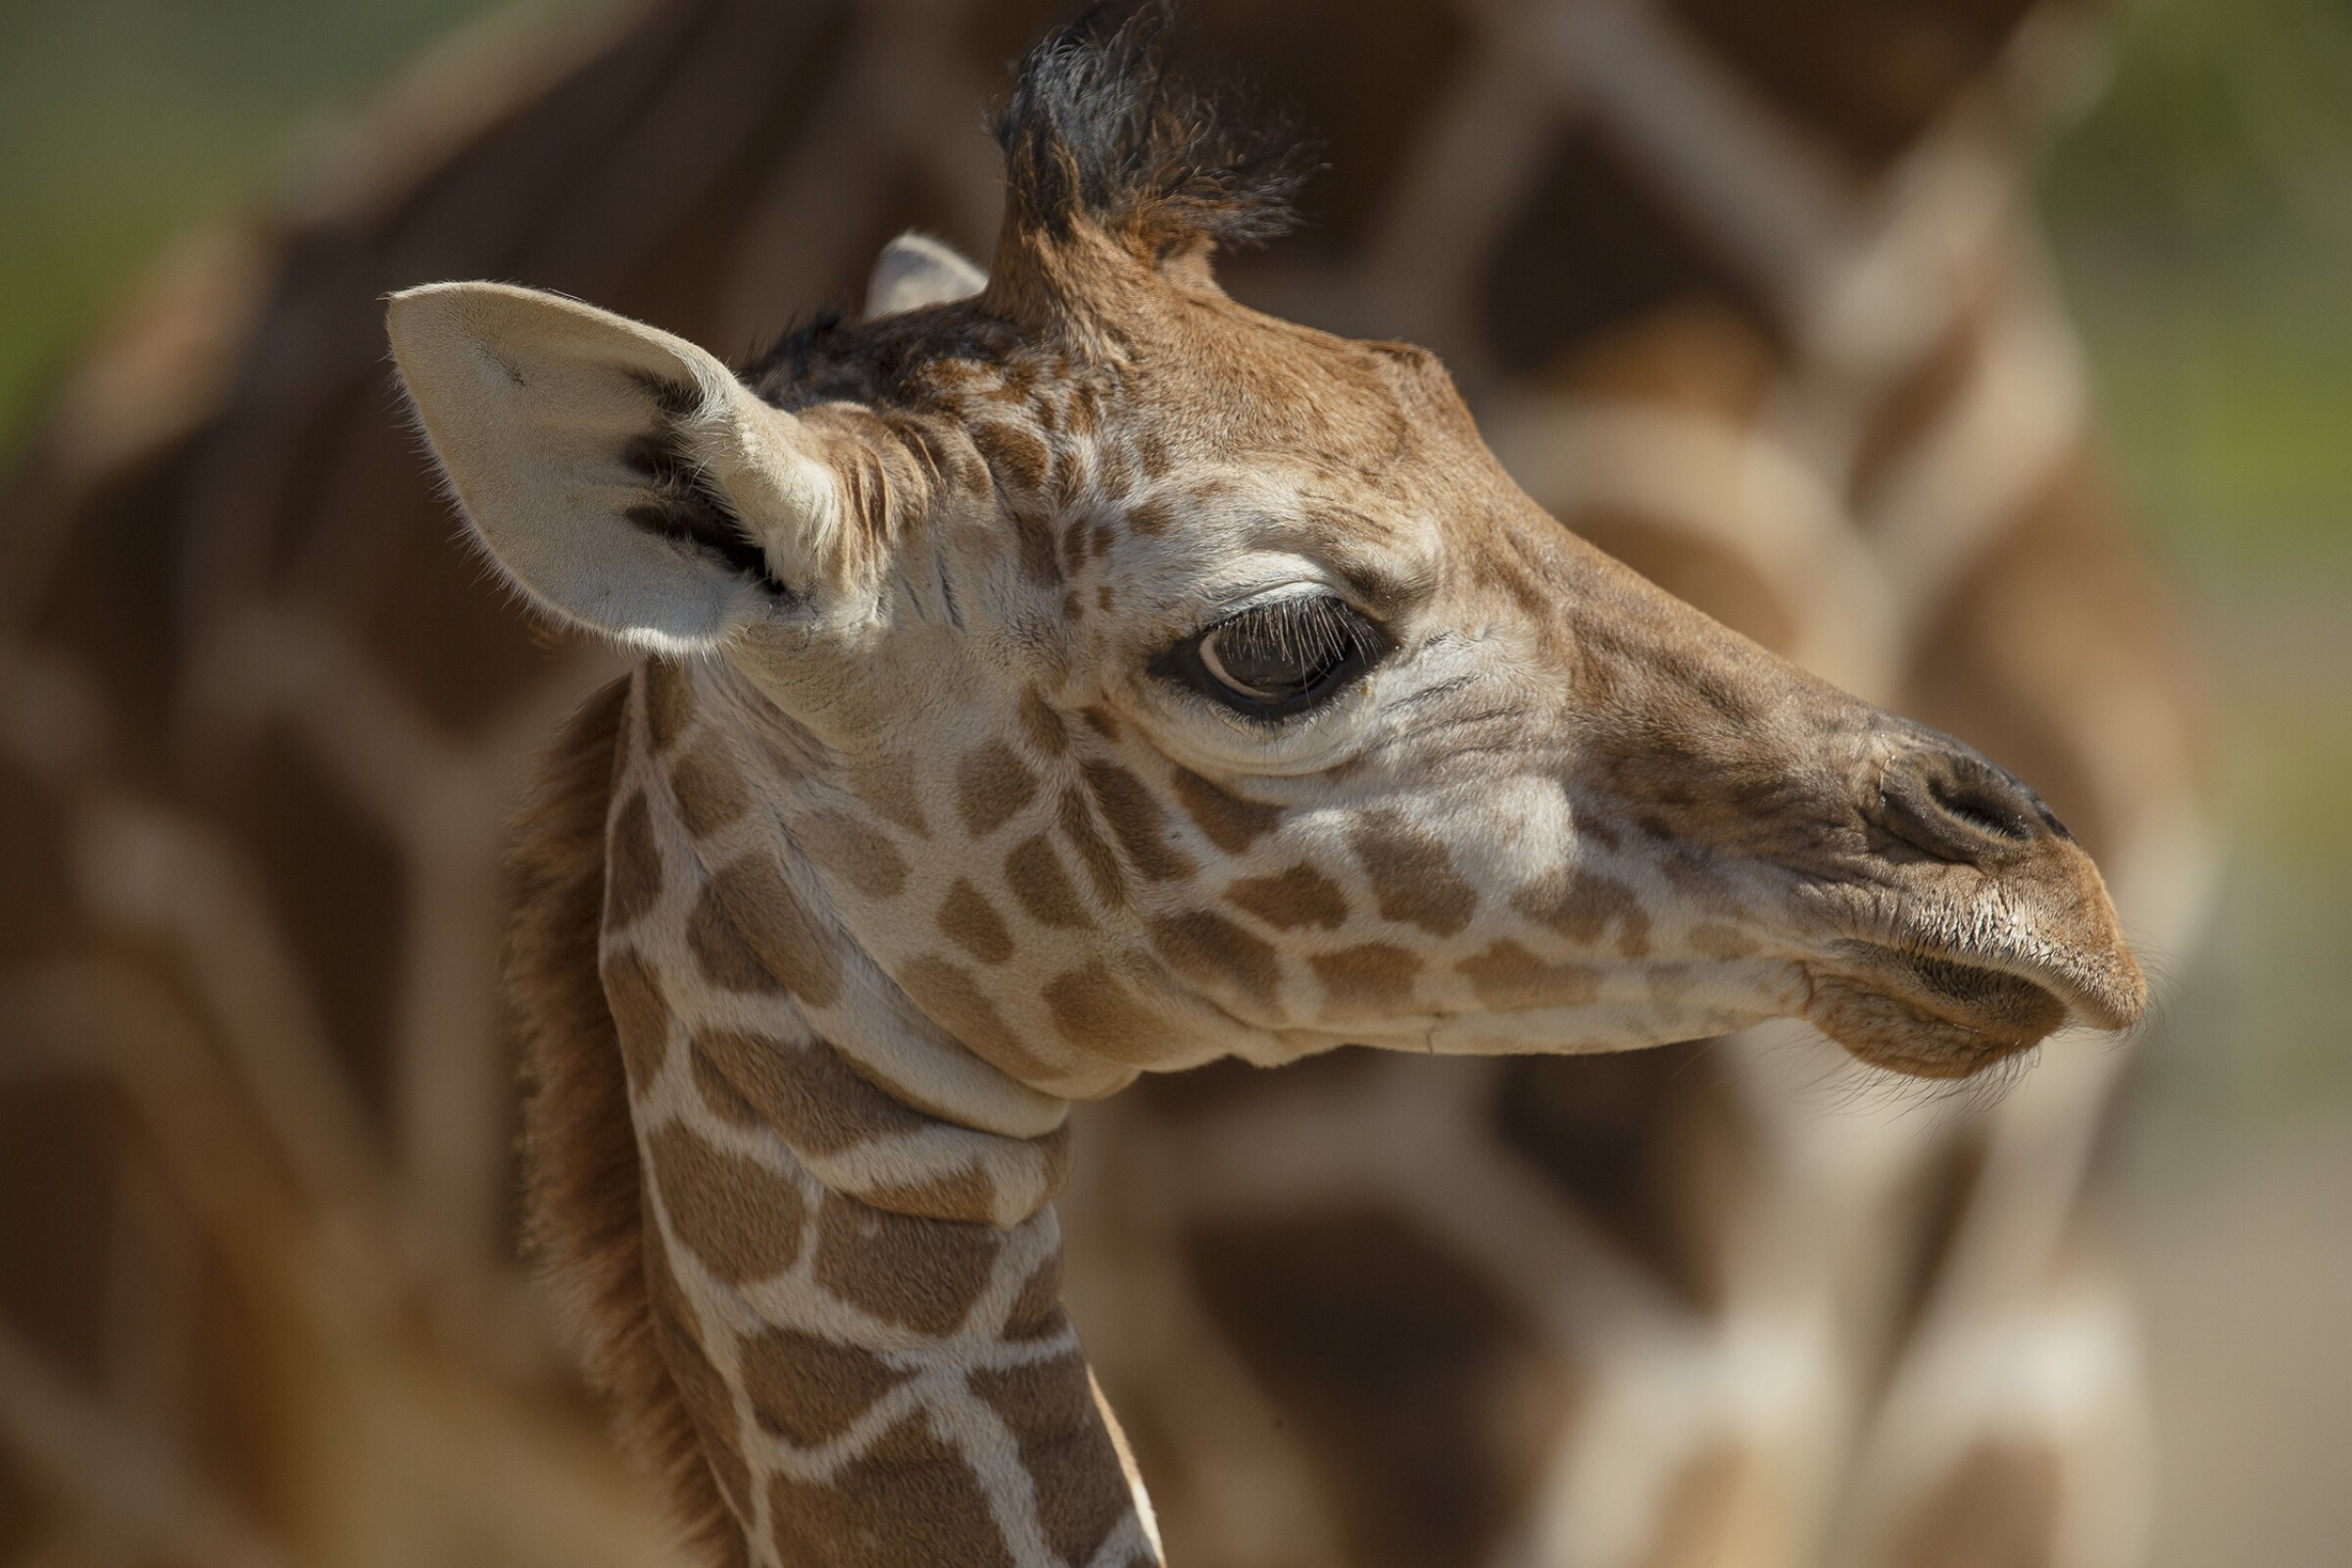 One-month-old giraffe calf, Zahara, is the newest addition at the San Diego Zoo Safari Park.